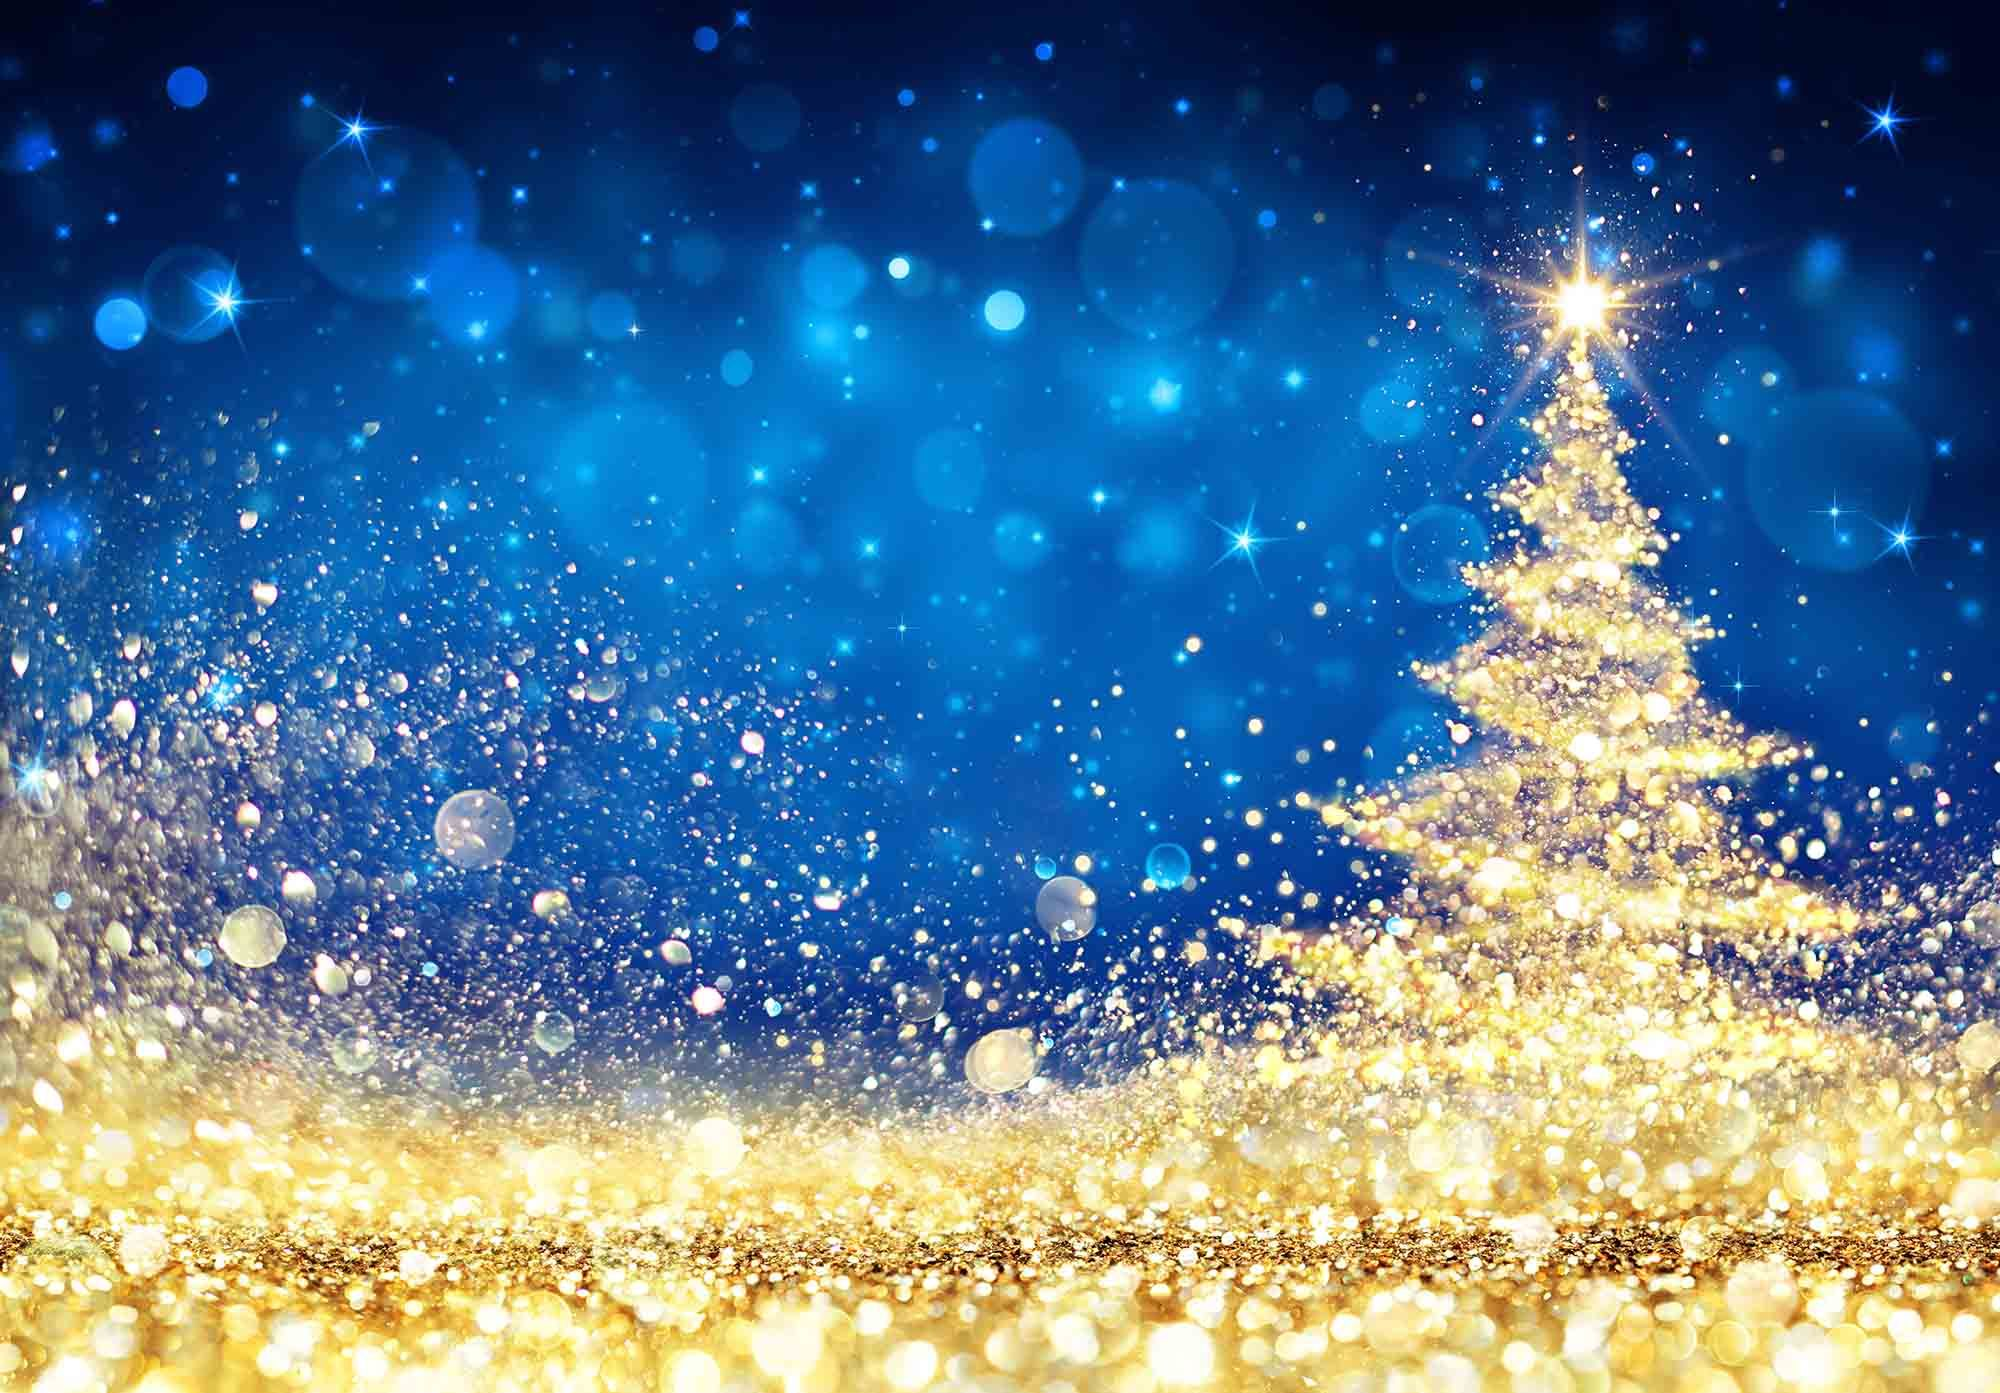 Christmas Tree Backgrounds.Shiny Christmas Tree Golden Dust Glittering In The Blue